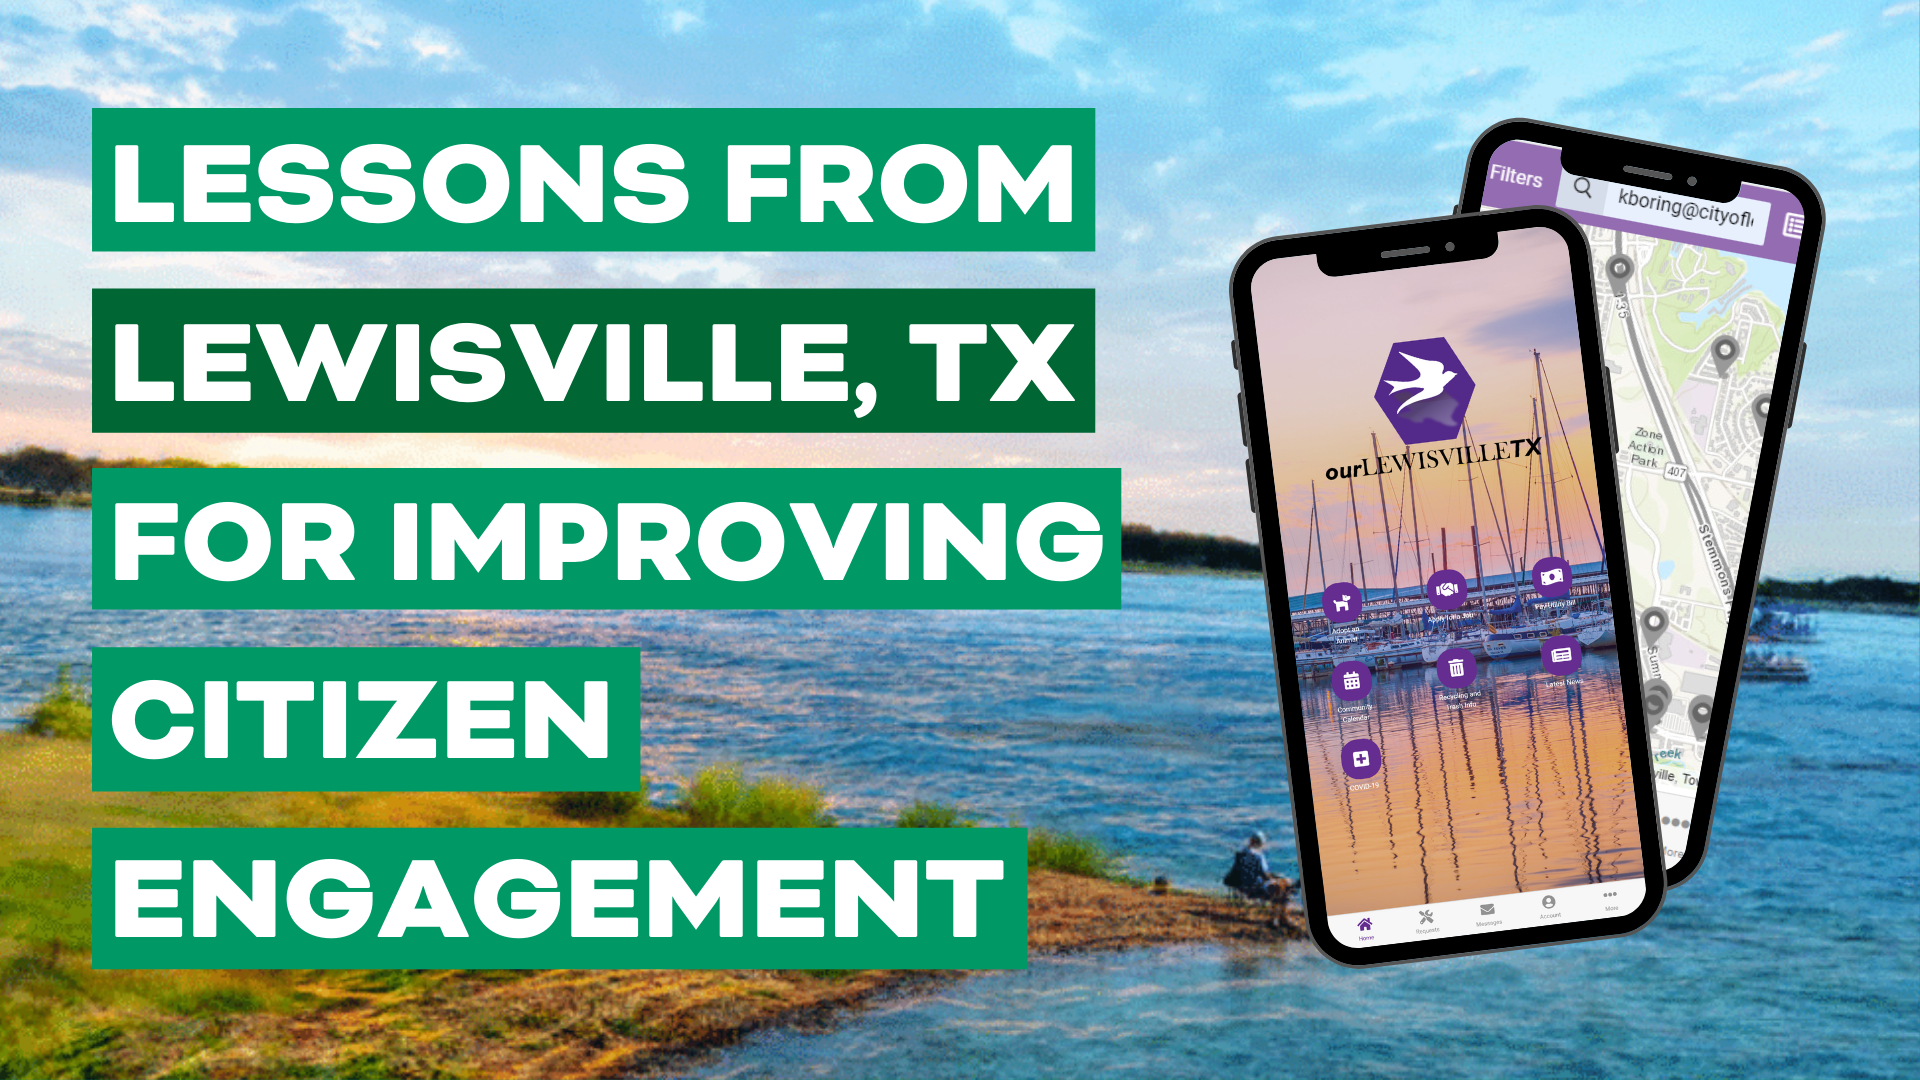 5 Lessons for Improving Citizen Engagement from Lewisville, TX